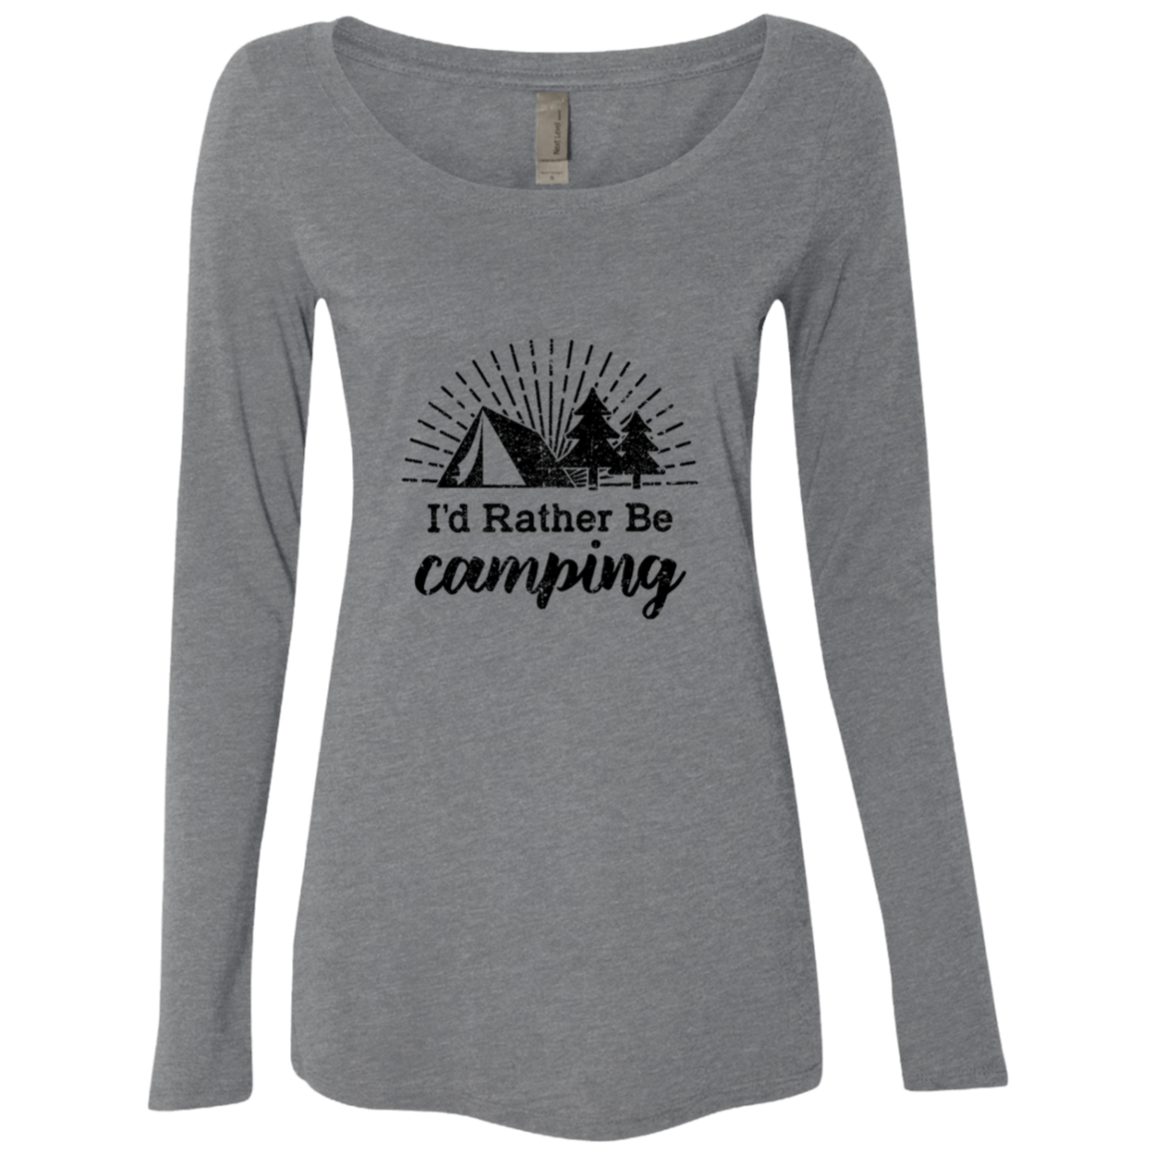 I'd Rather Be Camping Women's Long Sleeve Tee